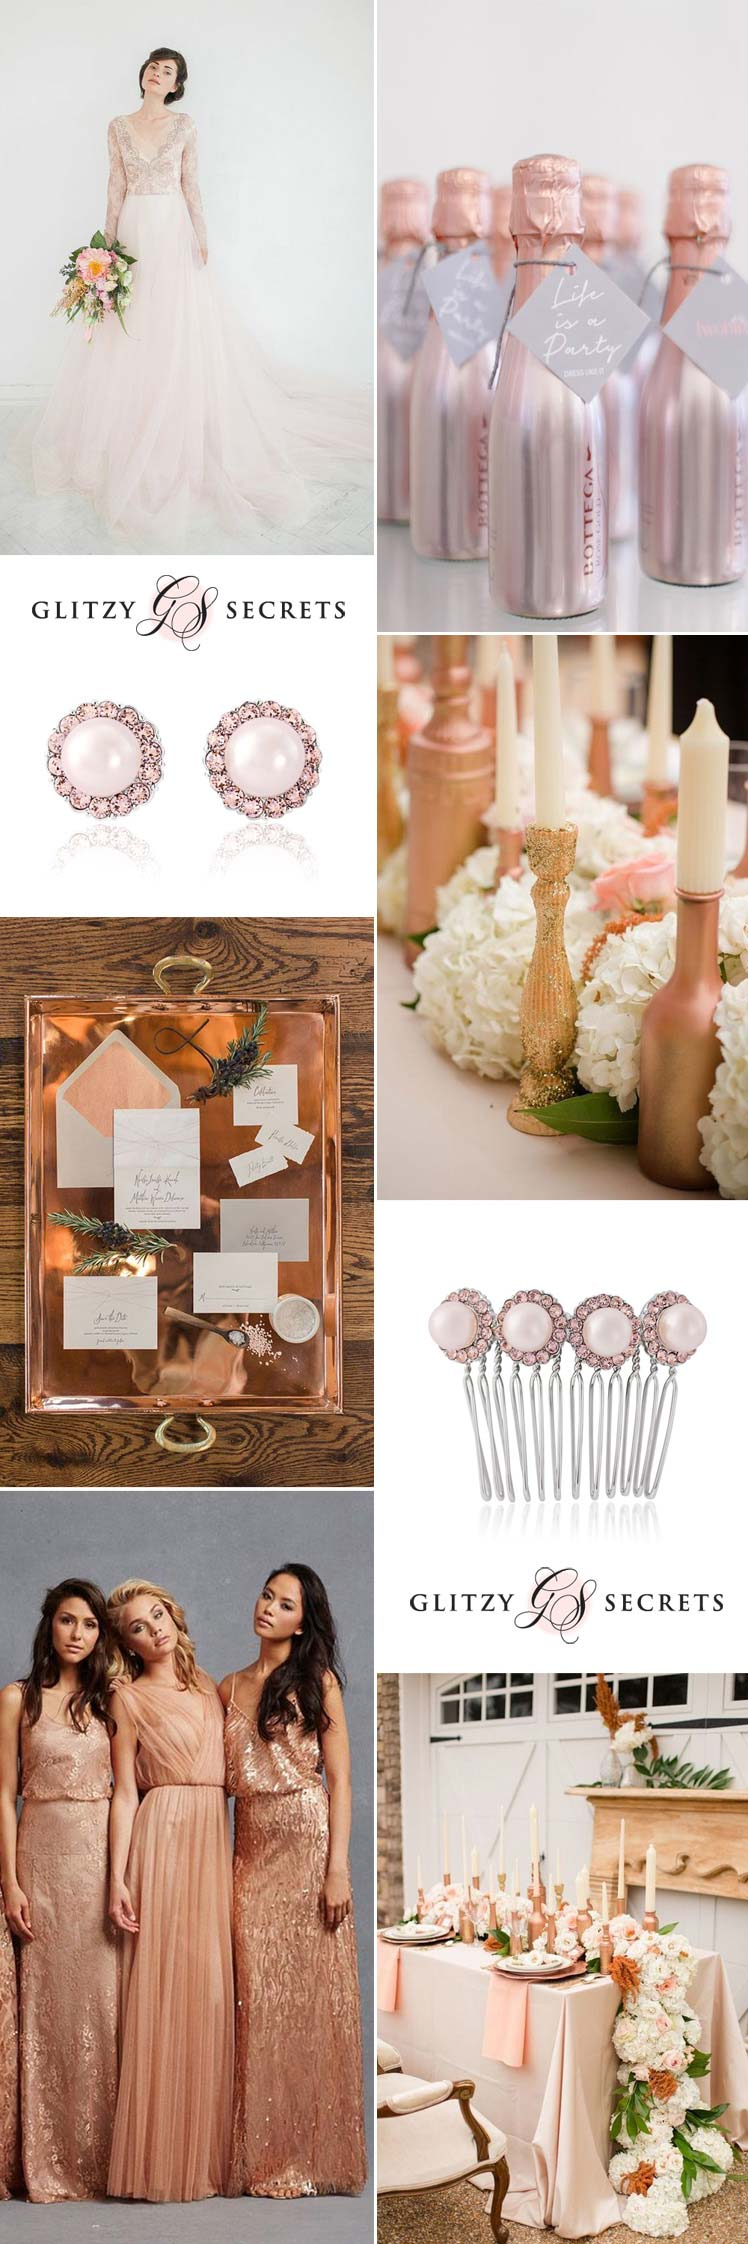 Bronze and blush wedding ideas